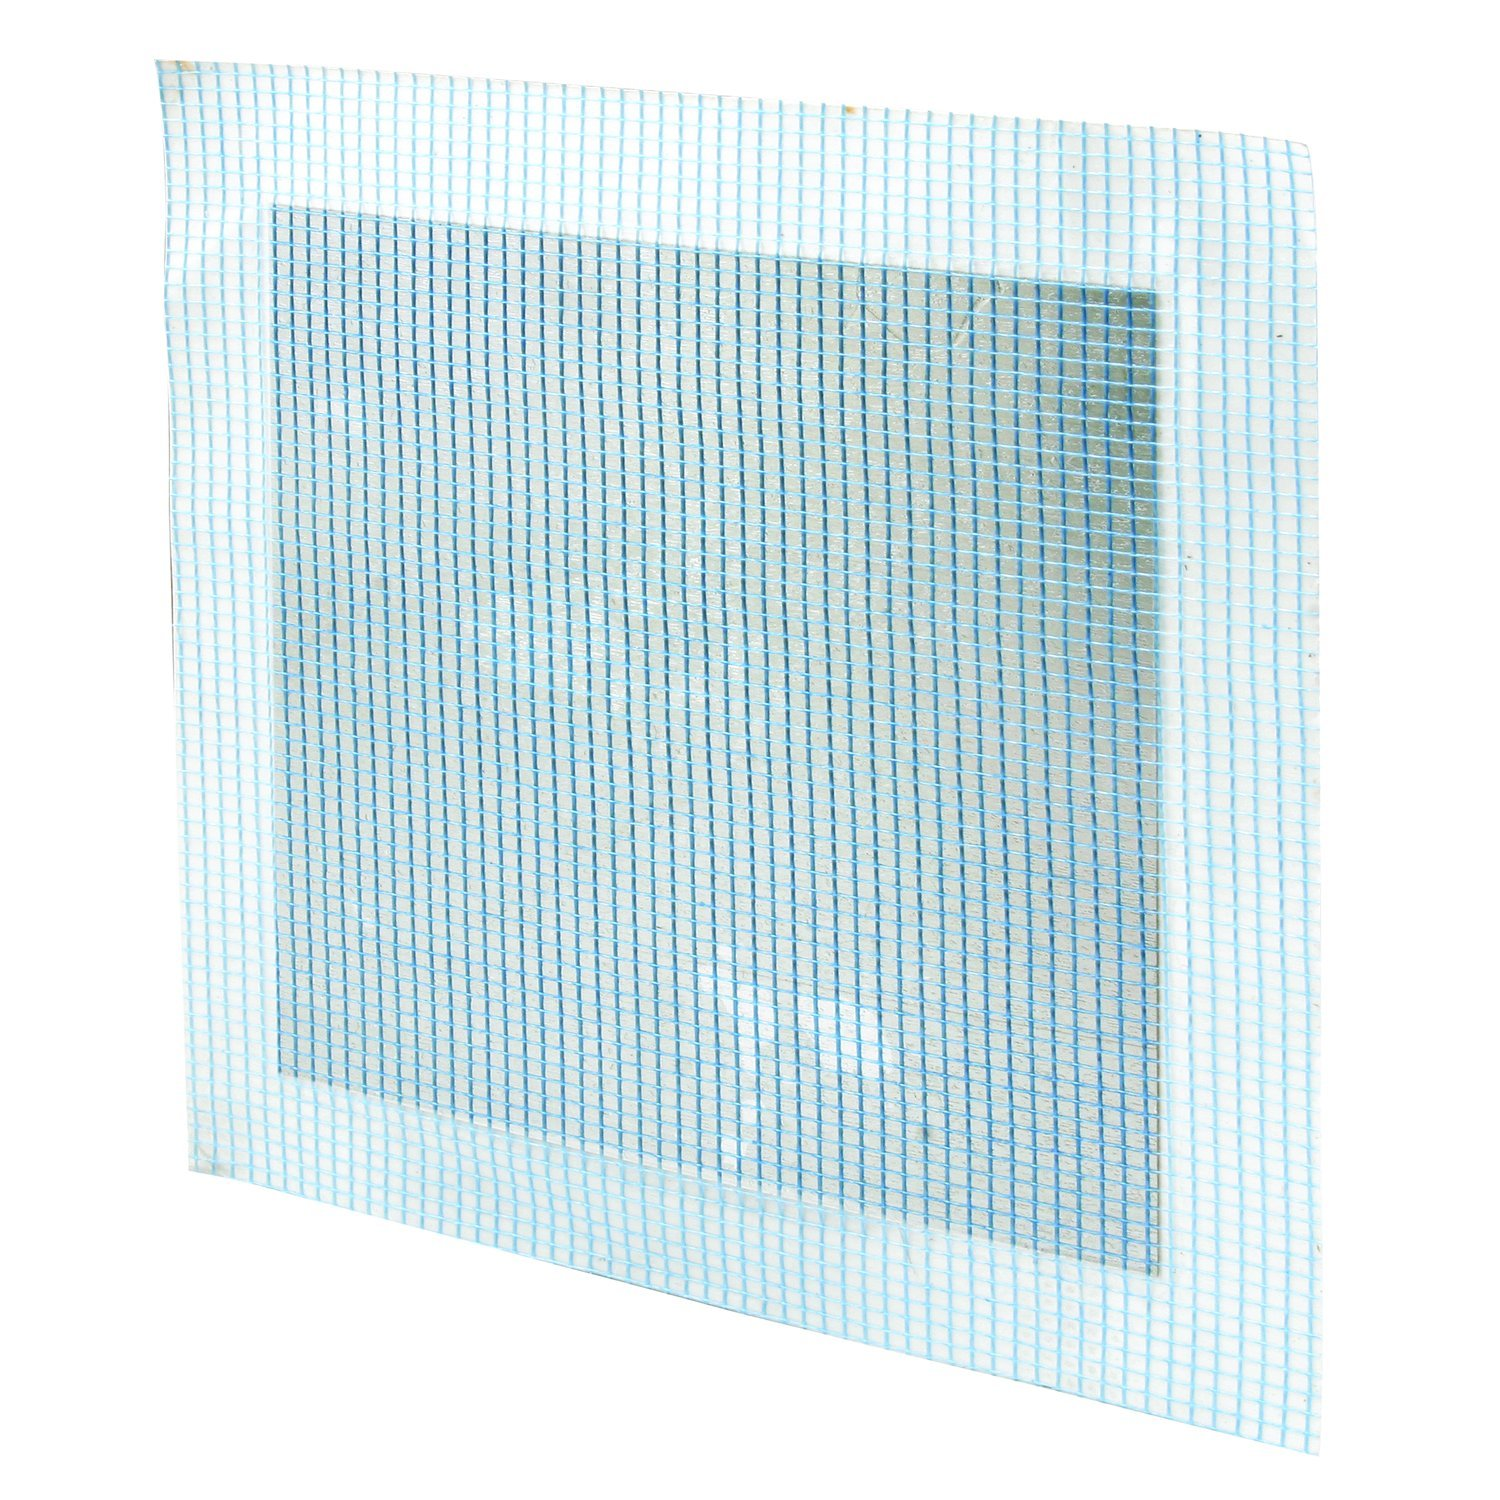 X 6-Inch Pack of 5 5 Piece Prime-Line MP9283 Self-Adhesive Drywall Repair Patch Fiber Mesh Over Galvanized Plate